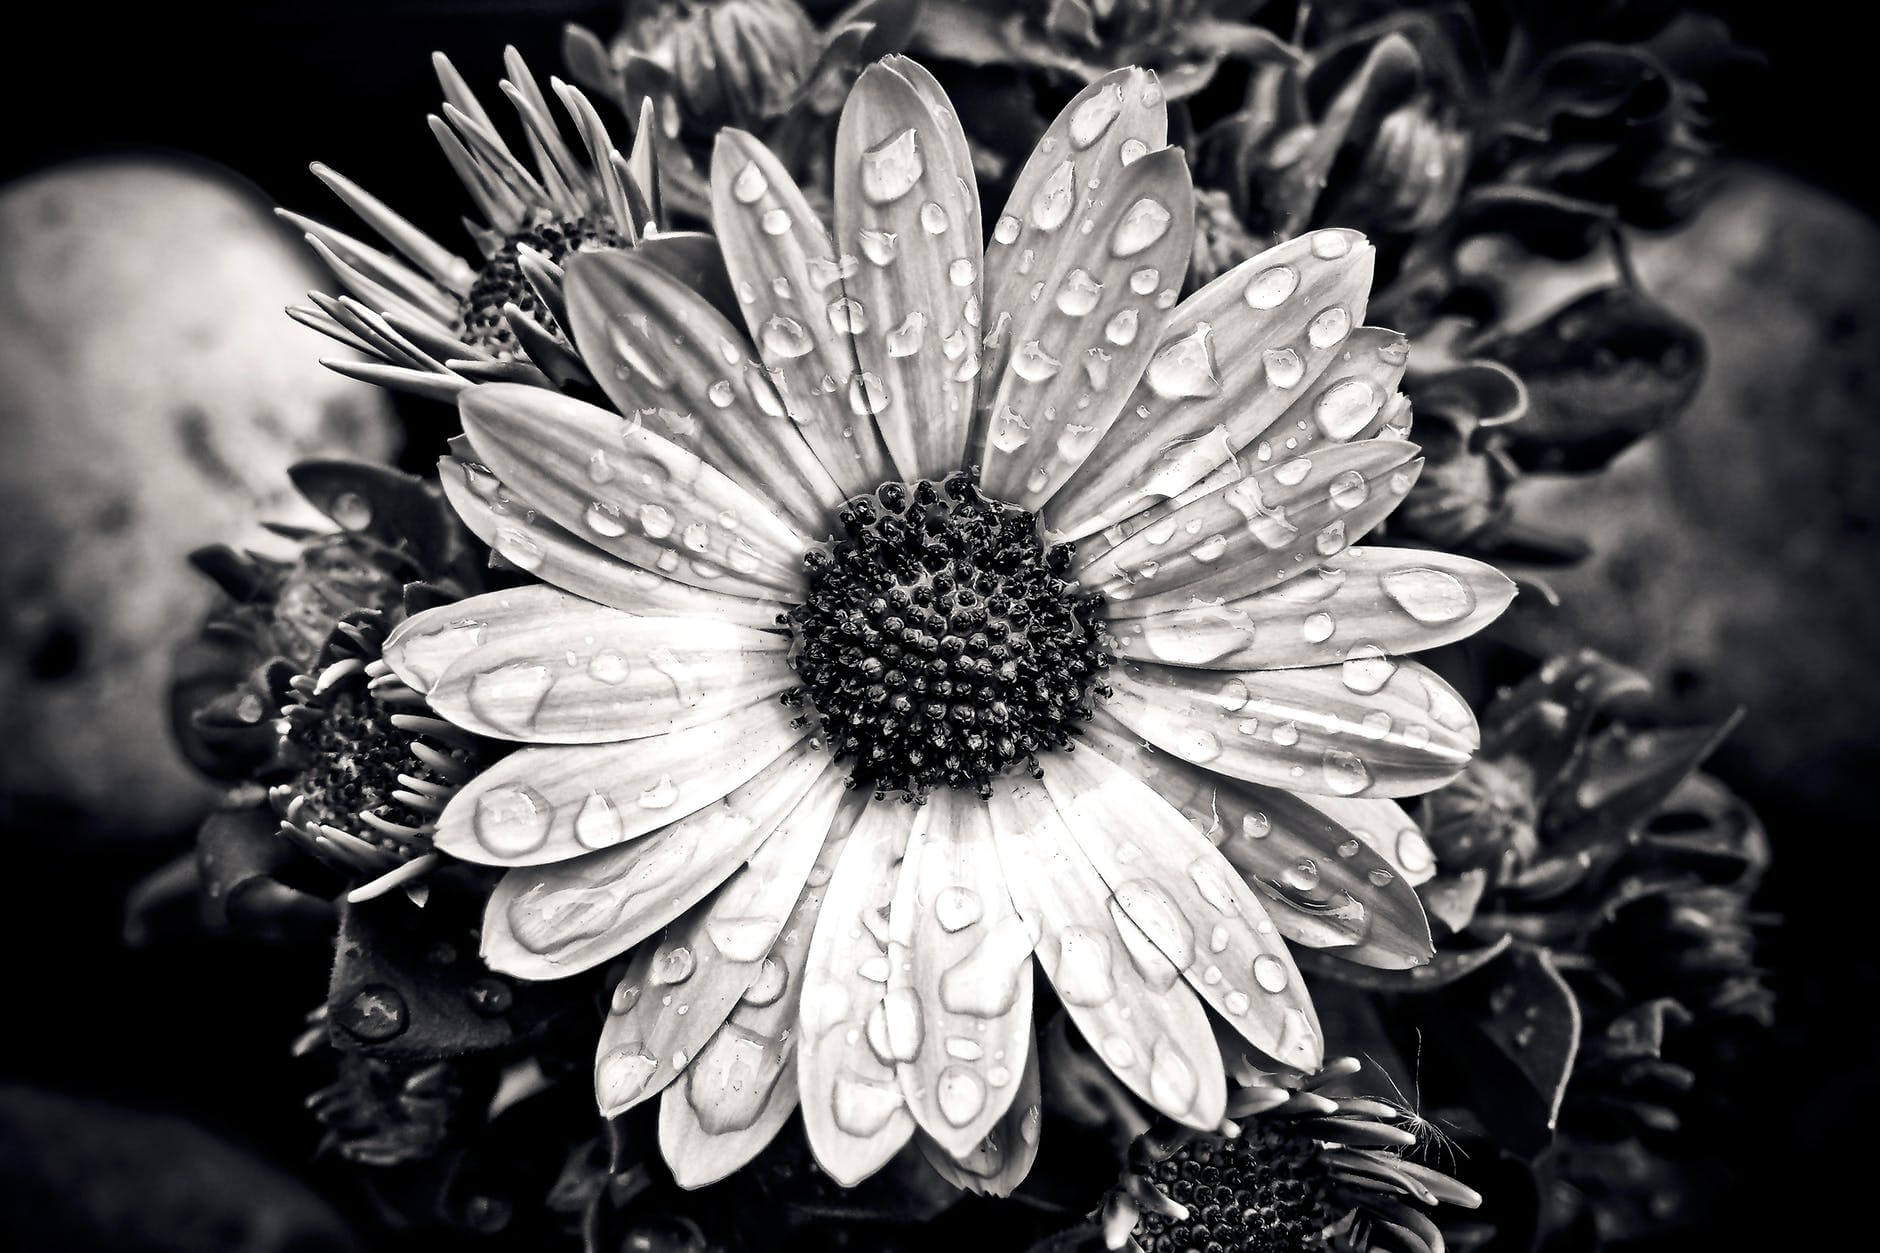 30 Black And White Pictures Of Flowers With Tips On How To ...